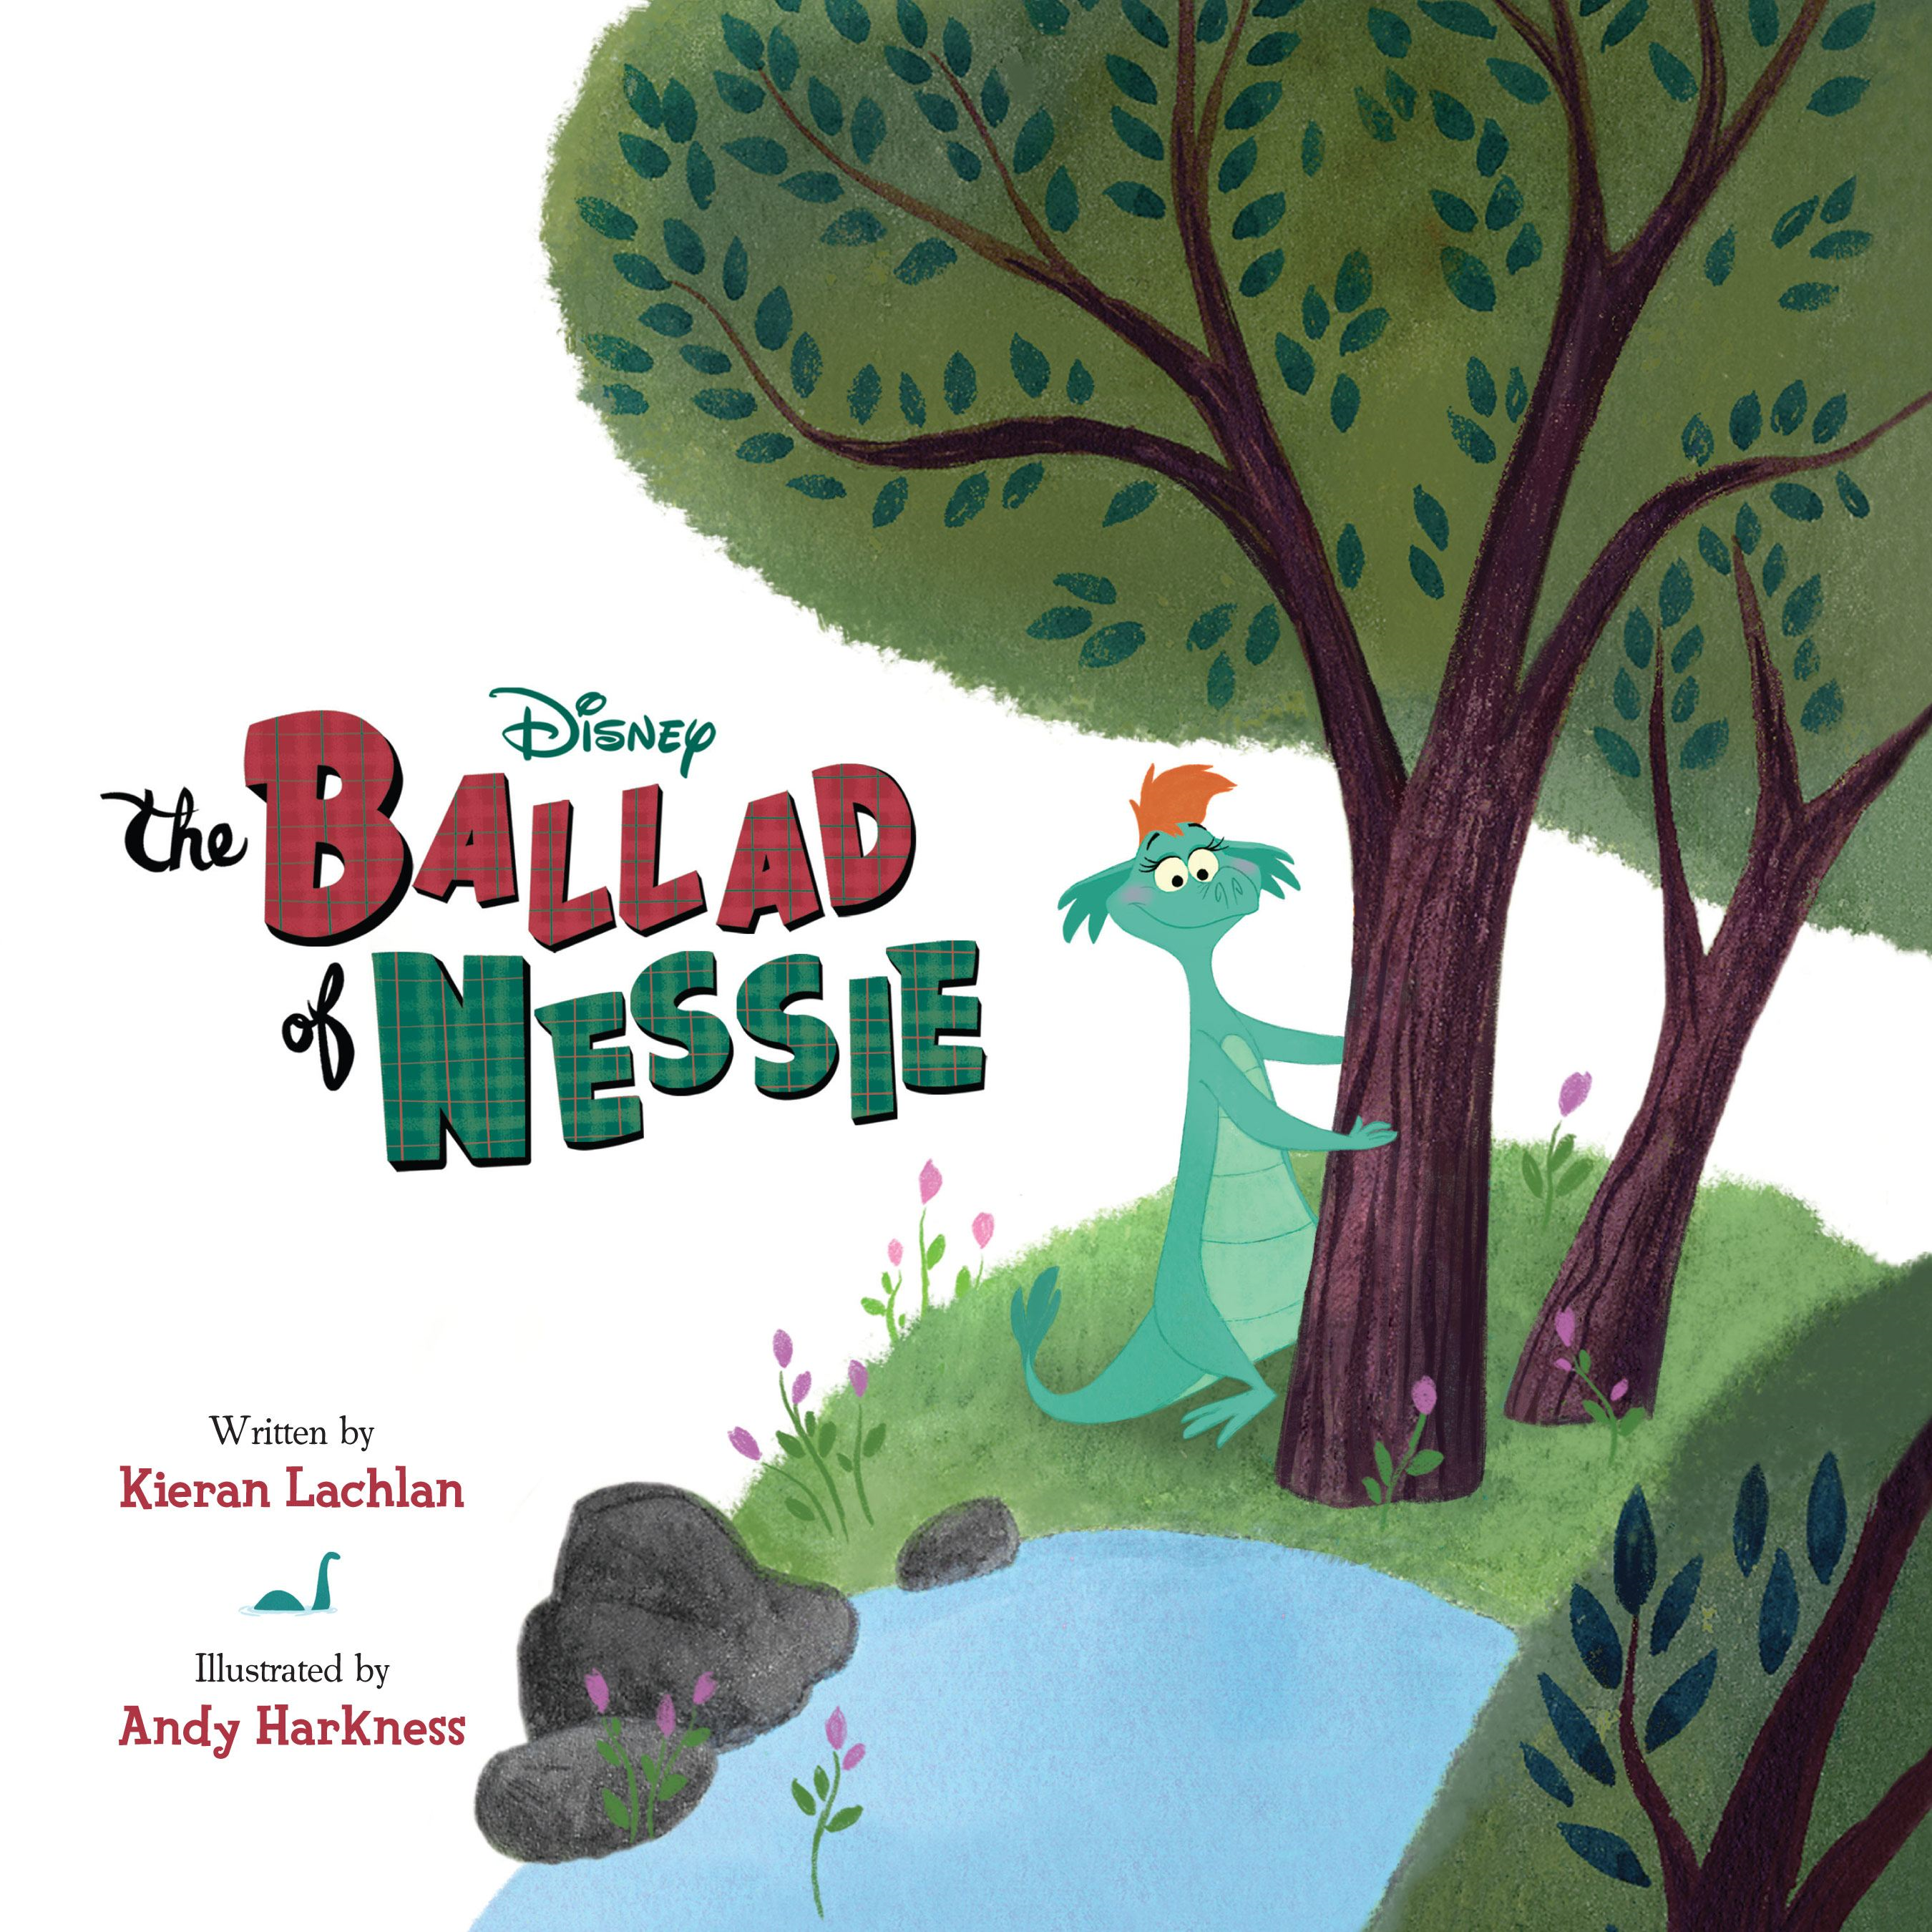 The Ballad of Nessie